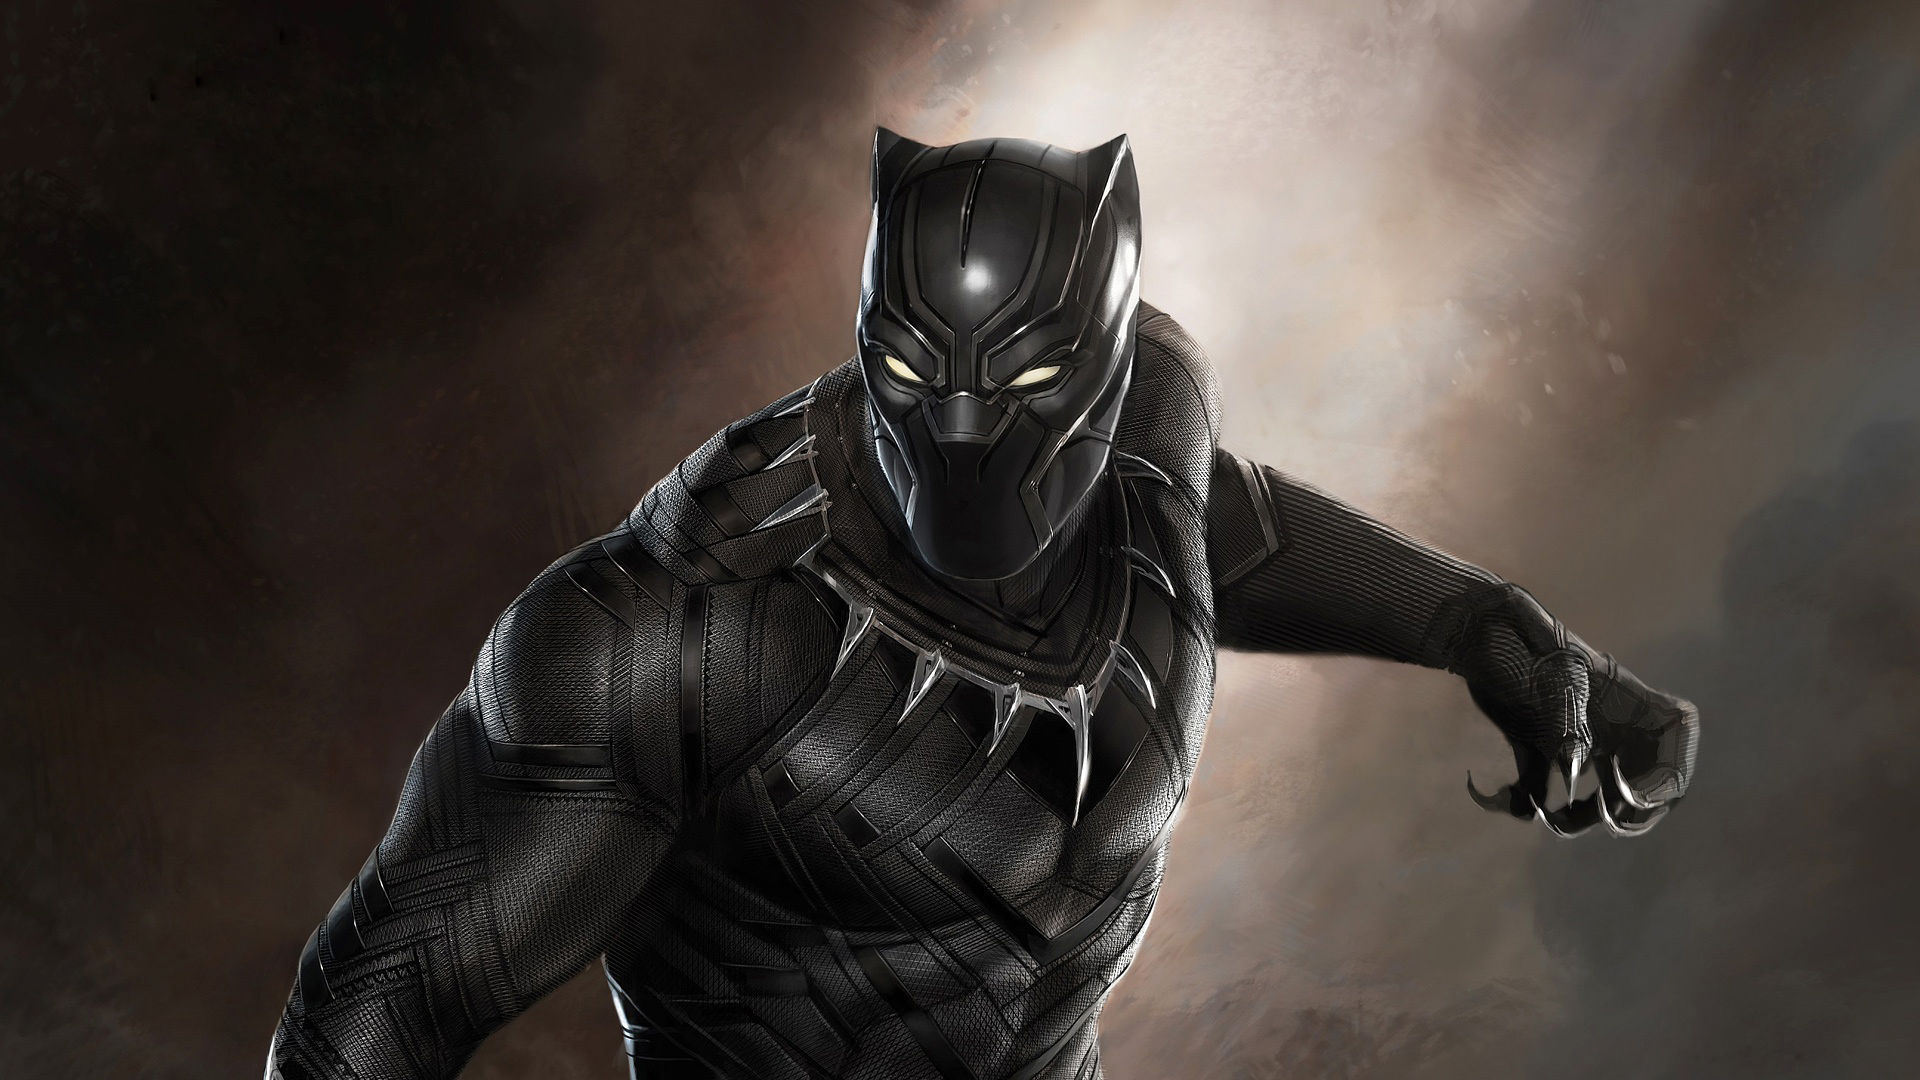 First Black Panther Teaser Trailer to Premiere Tonight